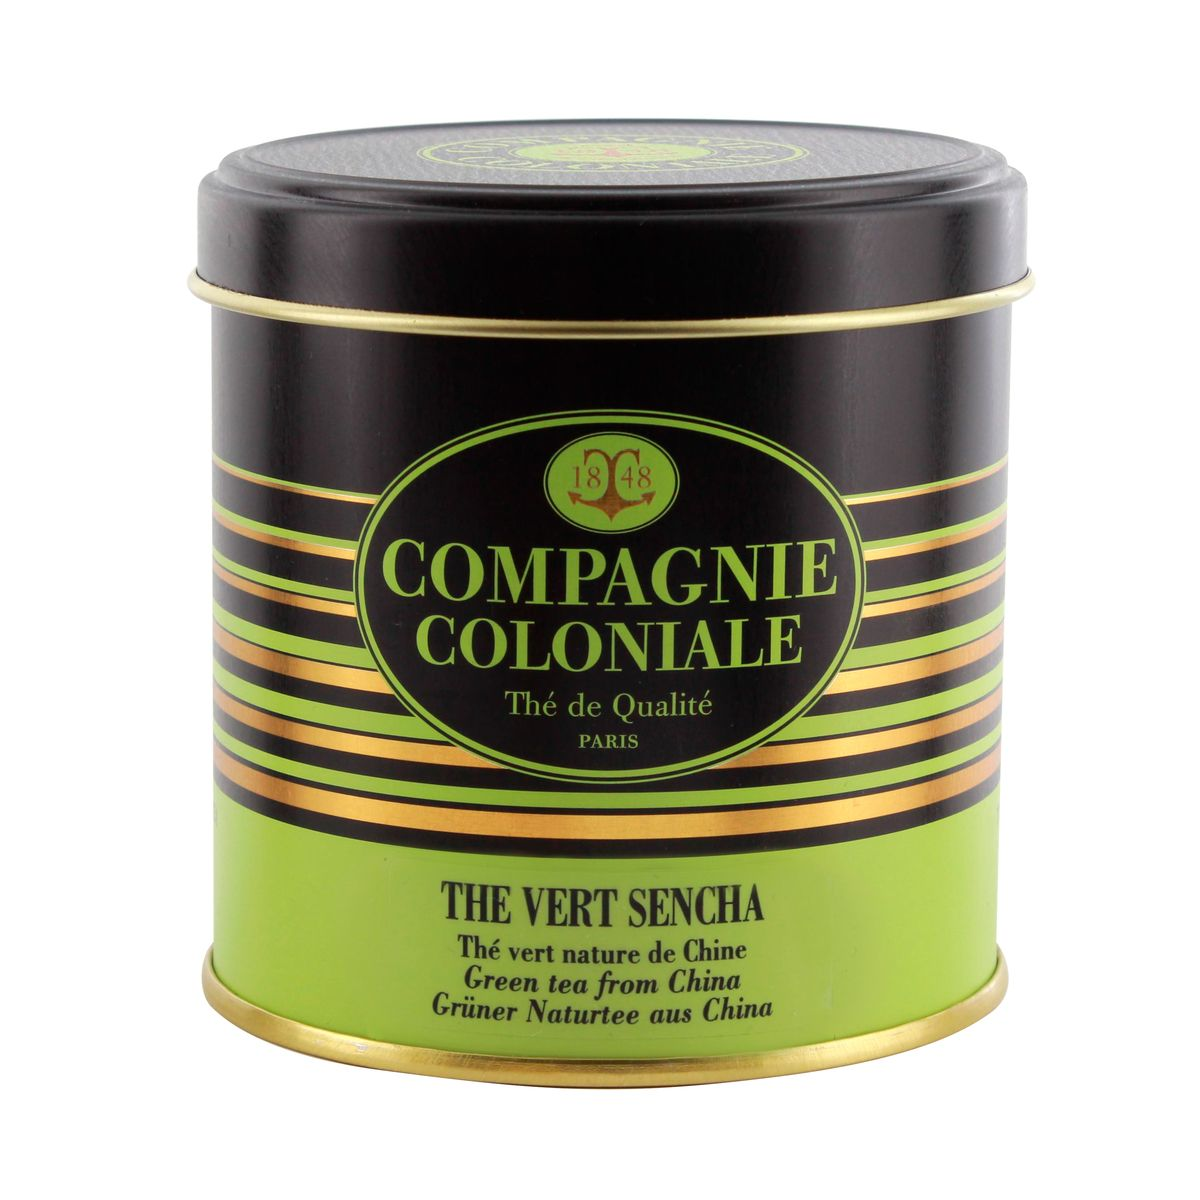 THE VERT NATURE ET AROMATISE BOITE METAL THE VERT SENCHA - COMPAGNIE COLONIALE